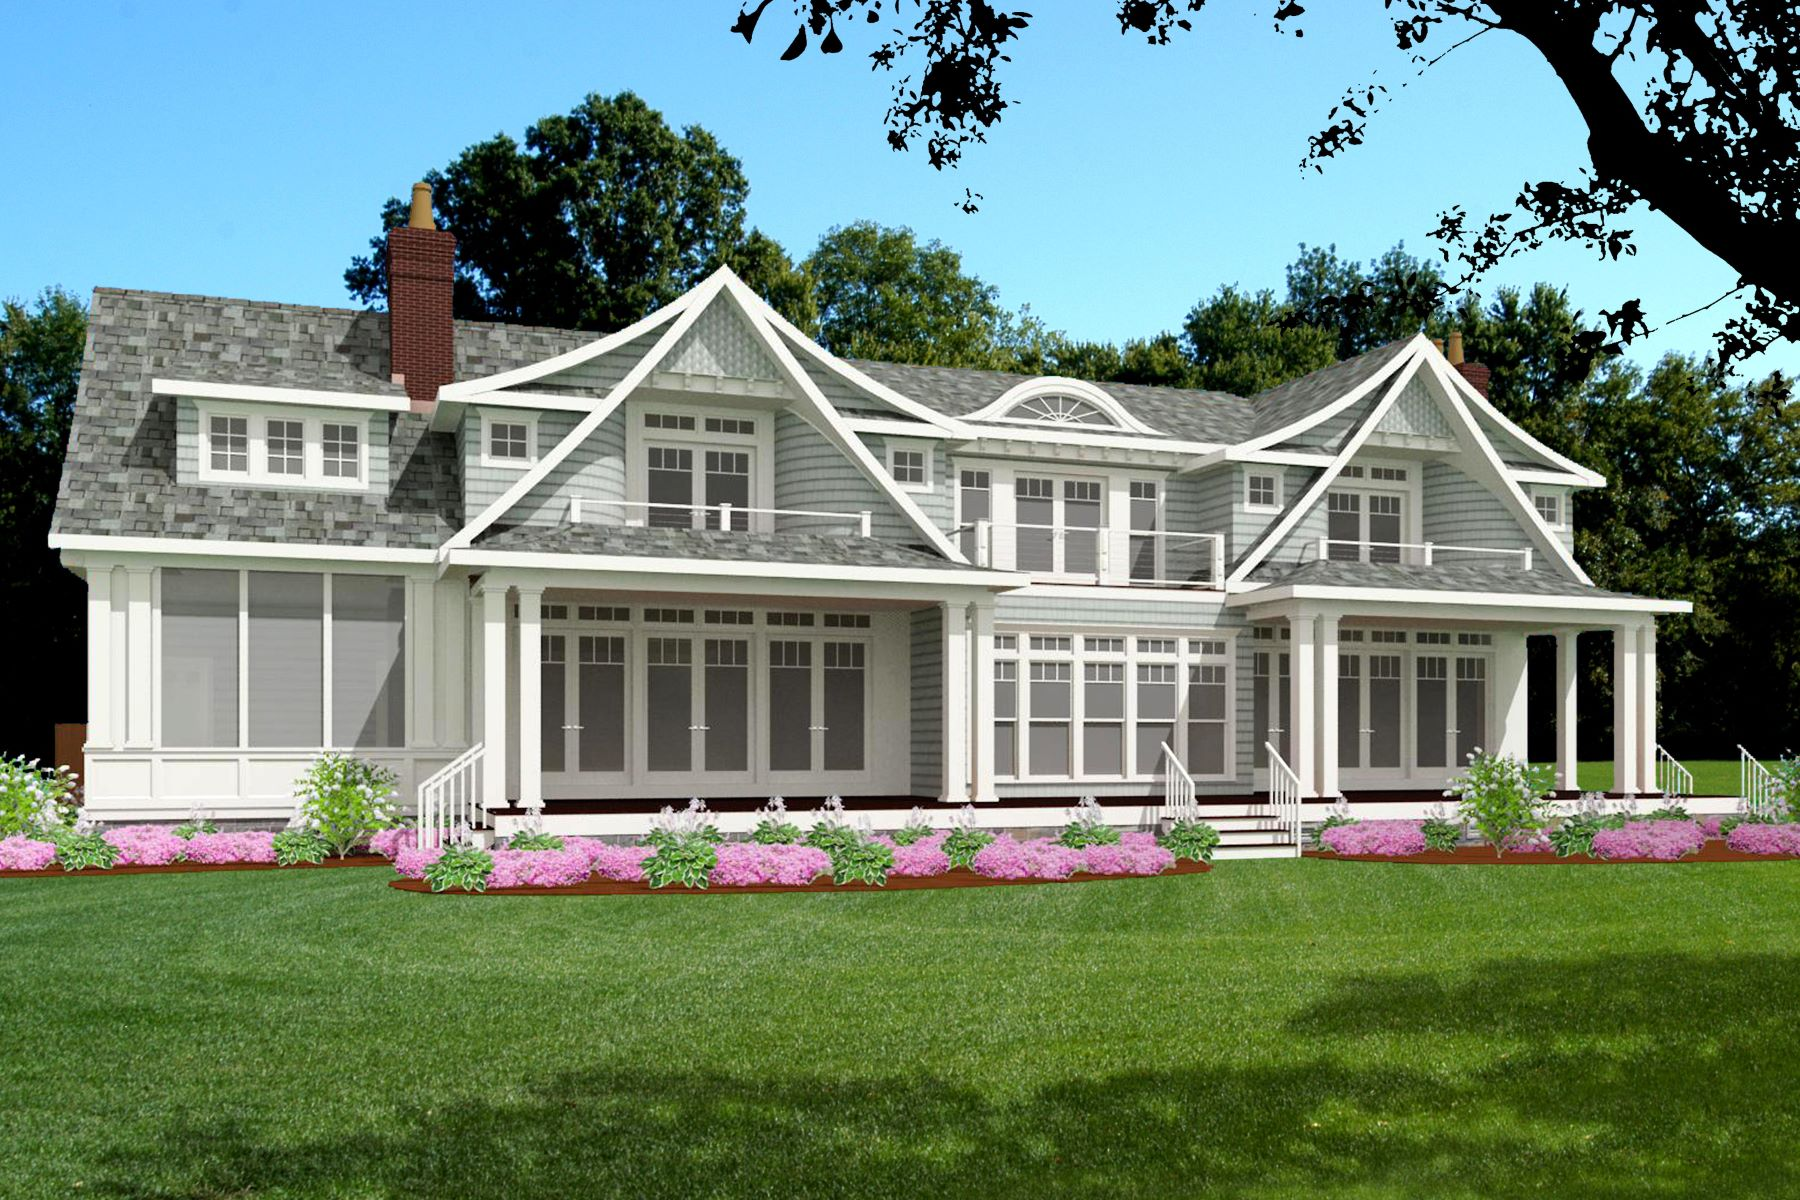 Single Family Homes for Sale at New Construction 63a Middle Beach Road Madison, Connecticut 06443 United States